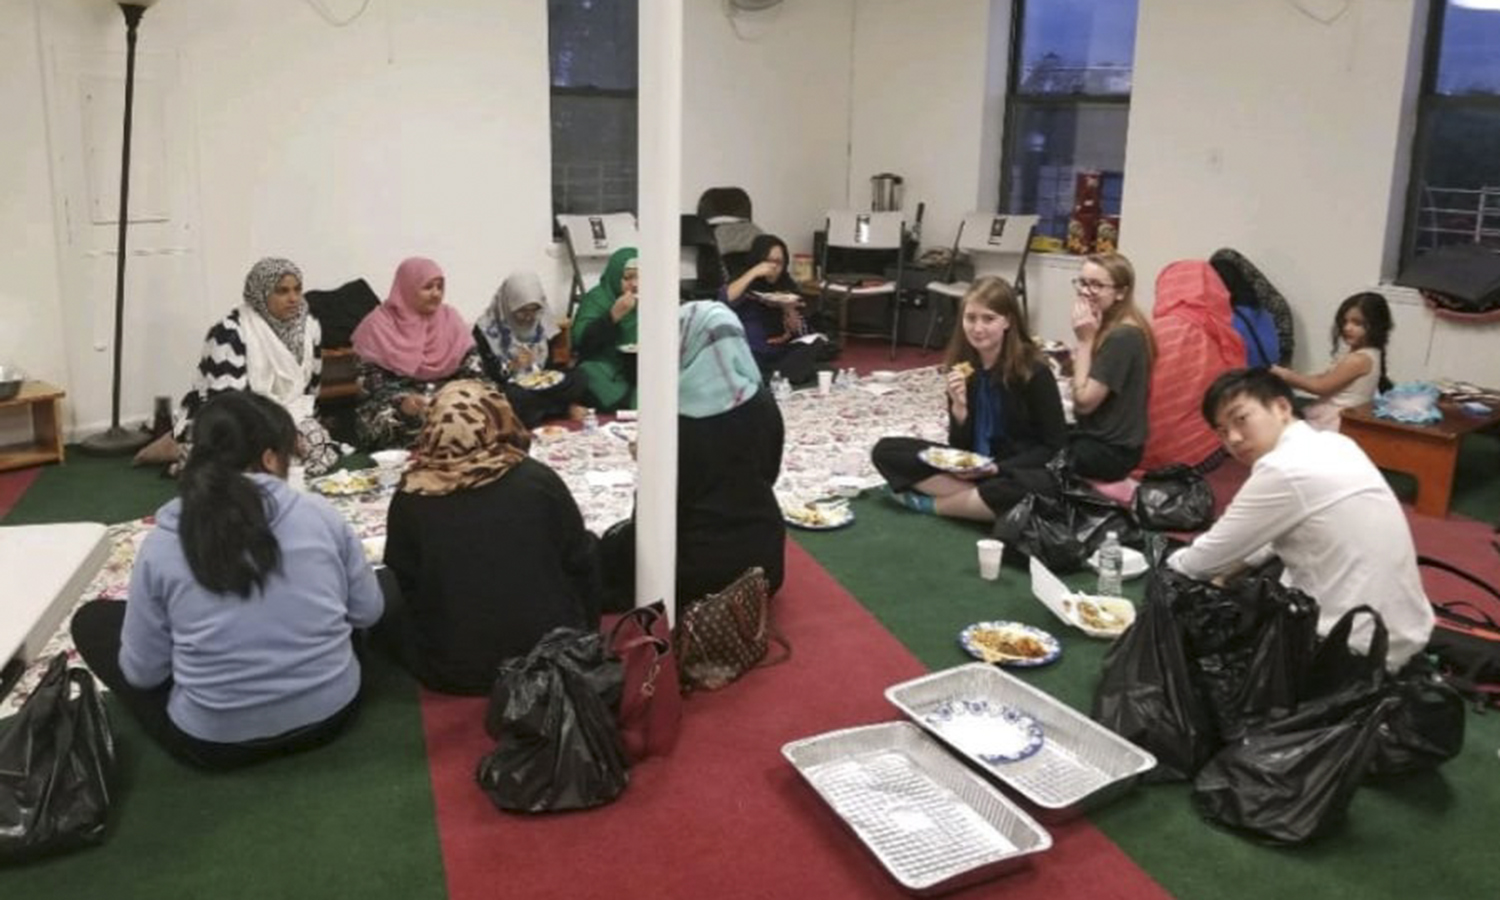 Elizabeth Dunne '19 speaks with members of a local mosque about their experiences growing up in New York City, through her summer position as a Legislative Affairs intern for the office of Assemblyman Brian Barnwell, representative of the 30th Assembly District in New York.